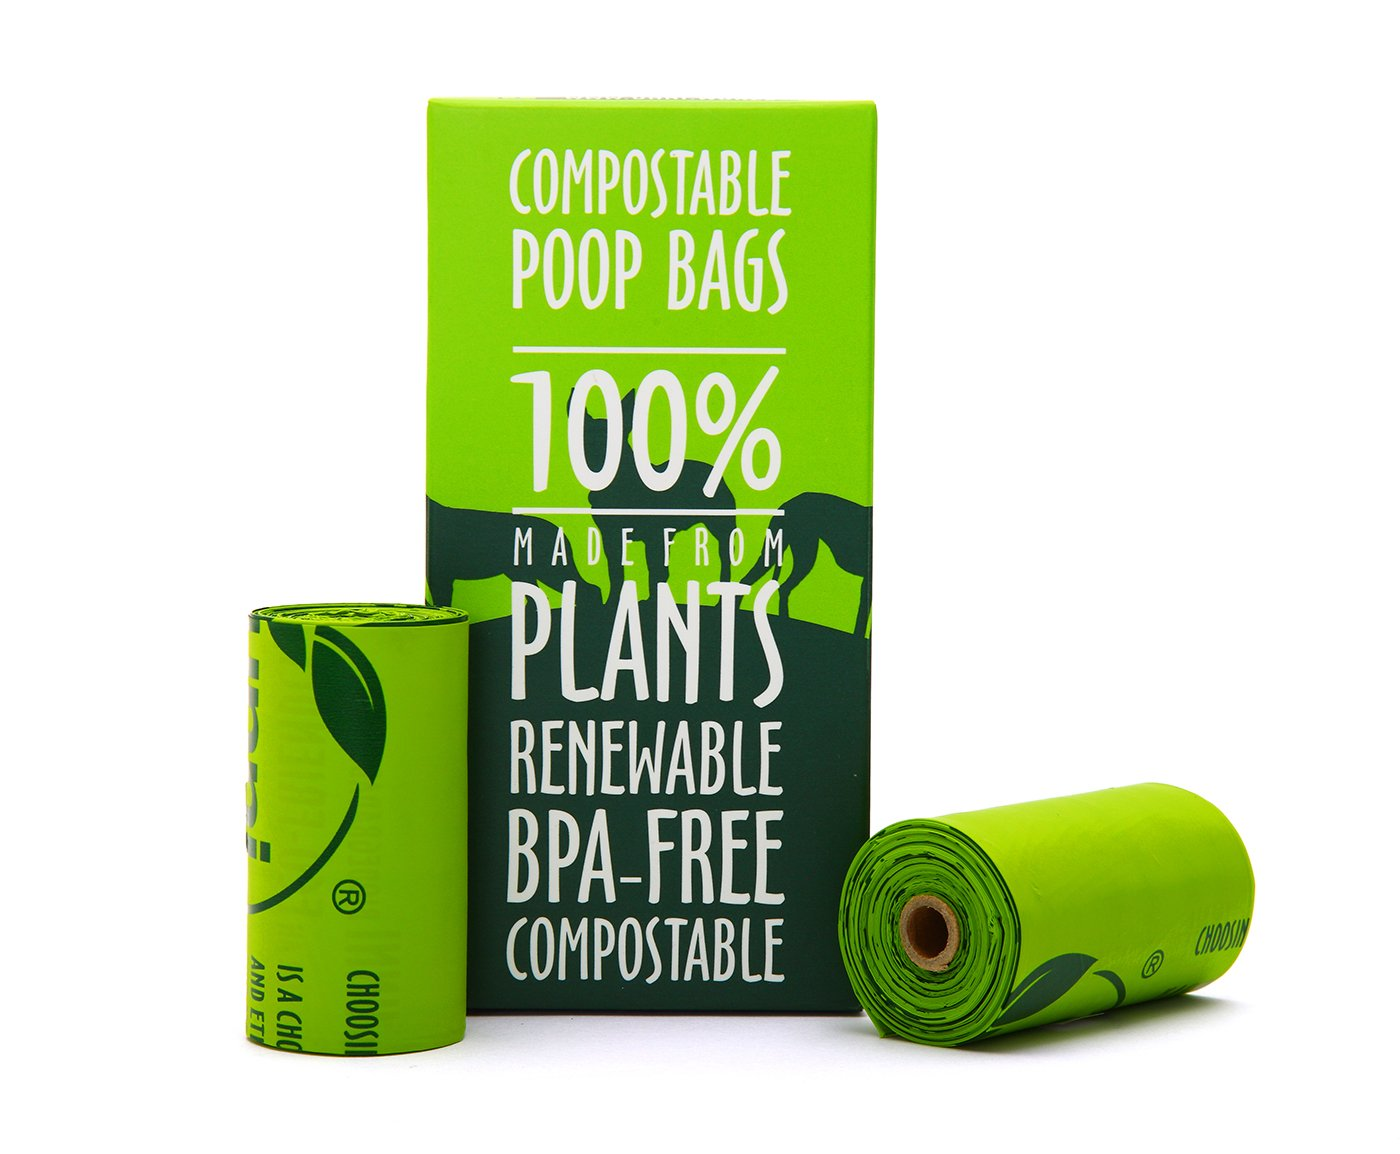 """Unni 100% Compostable Biodegradable Dog Waste Poop Bags, 120 Count, 8 Refill Rolls, Size 9"""" X 13"""", Extra Thick 0.8 Mils, US BPI & European VINCOTTE Certificated,Earth Friendly Highest ASTM D6400 Rated"""